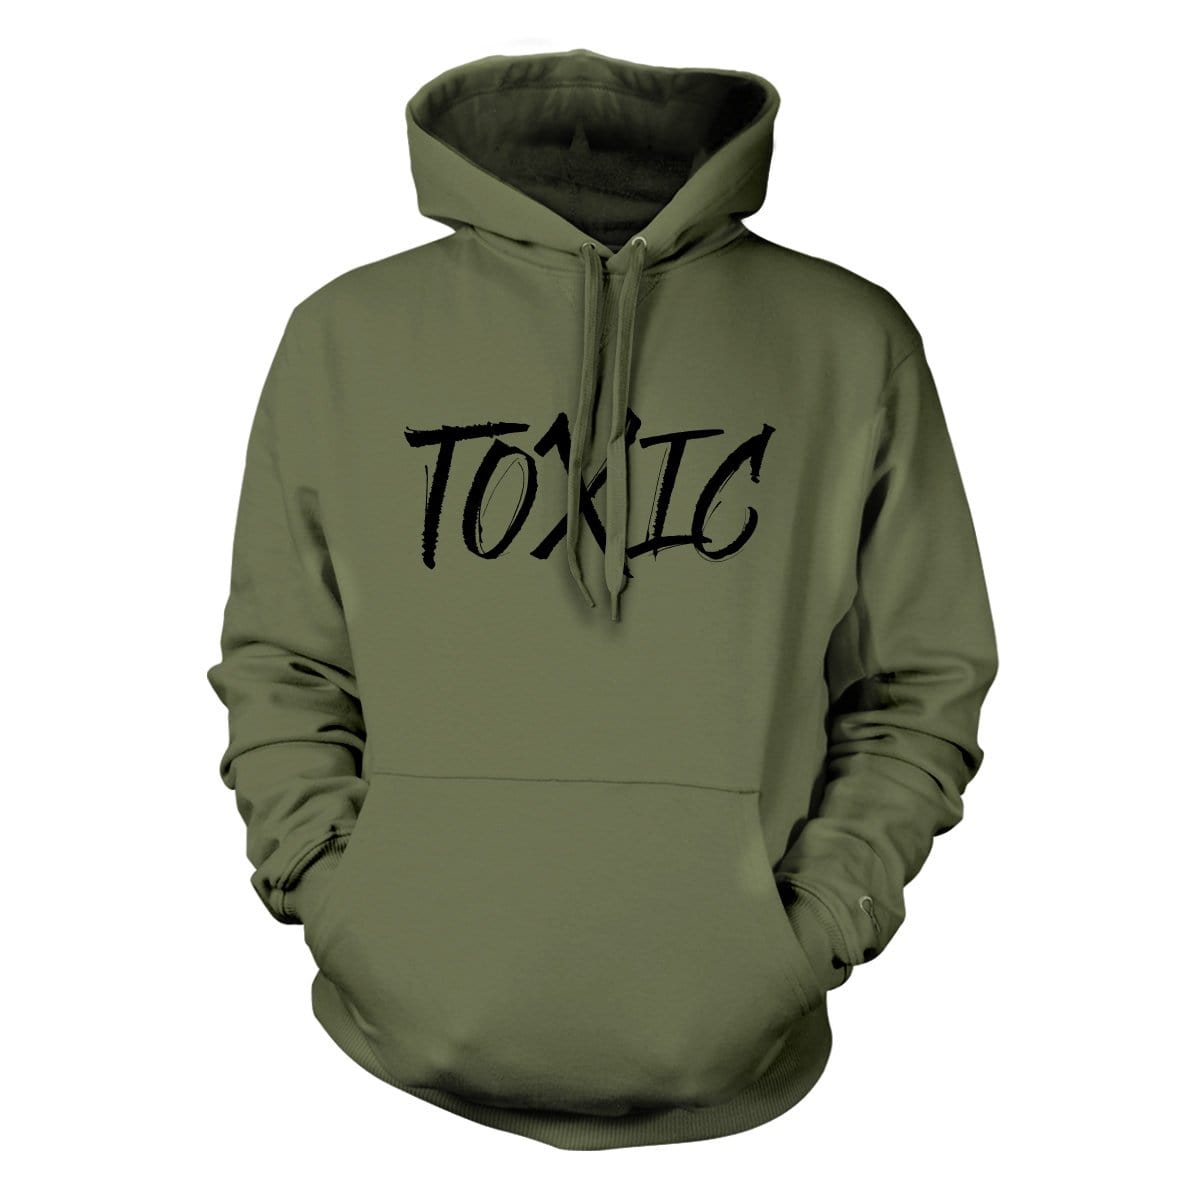 Toxic Hoodie - Pipe Hitters Union